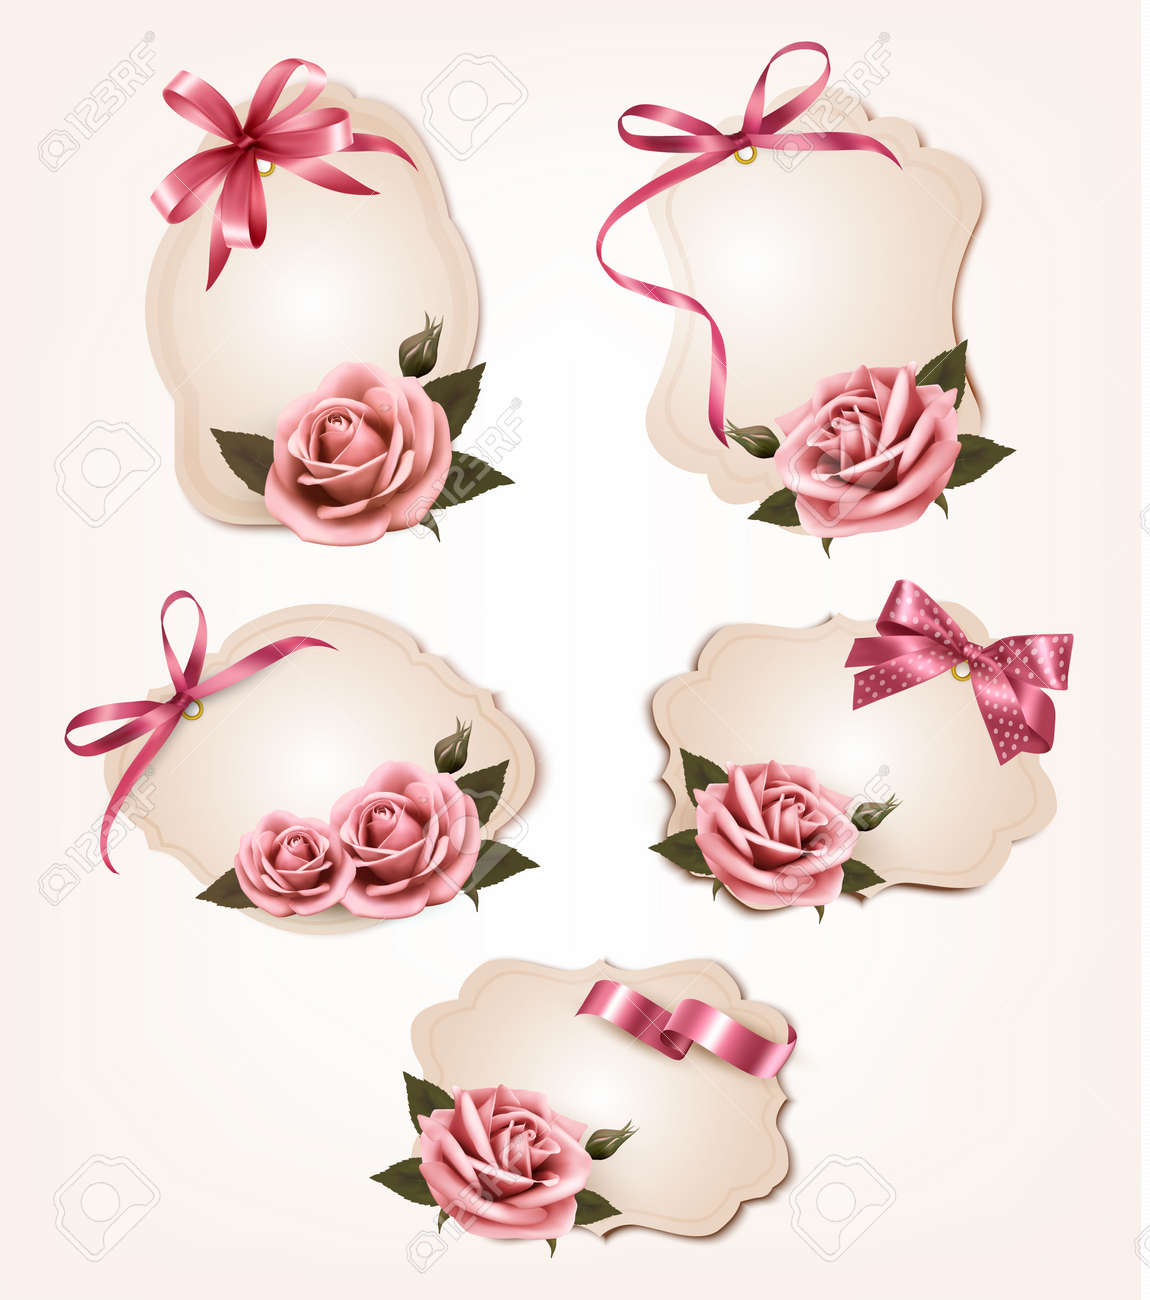 Collection of retro greeting cards with pink roses. Vector illustration. Stock Vector - 22966507